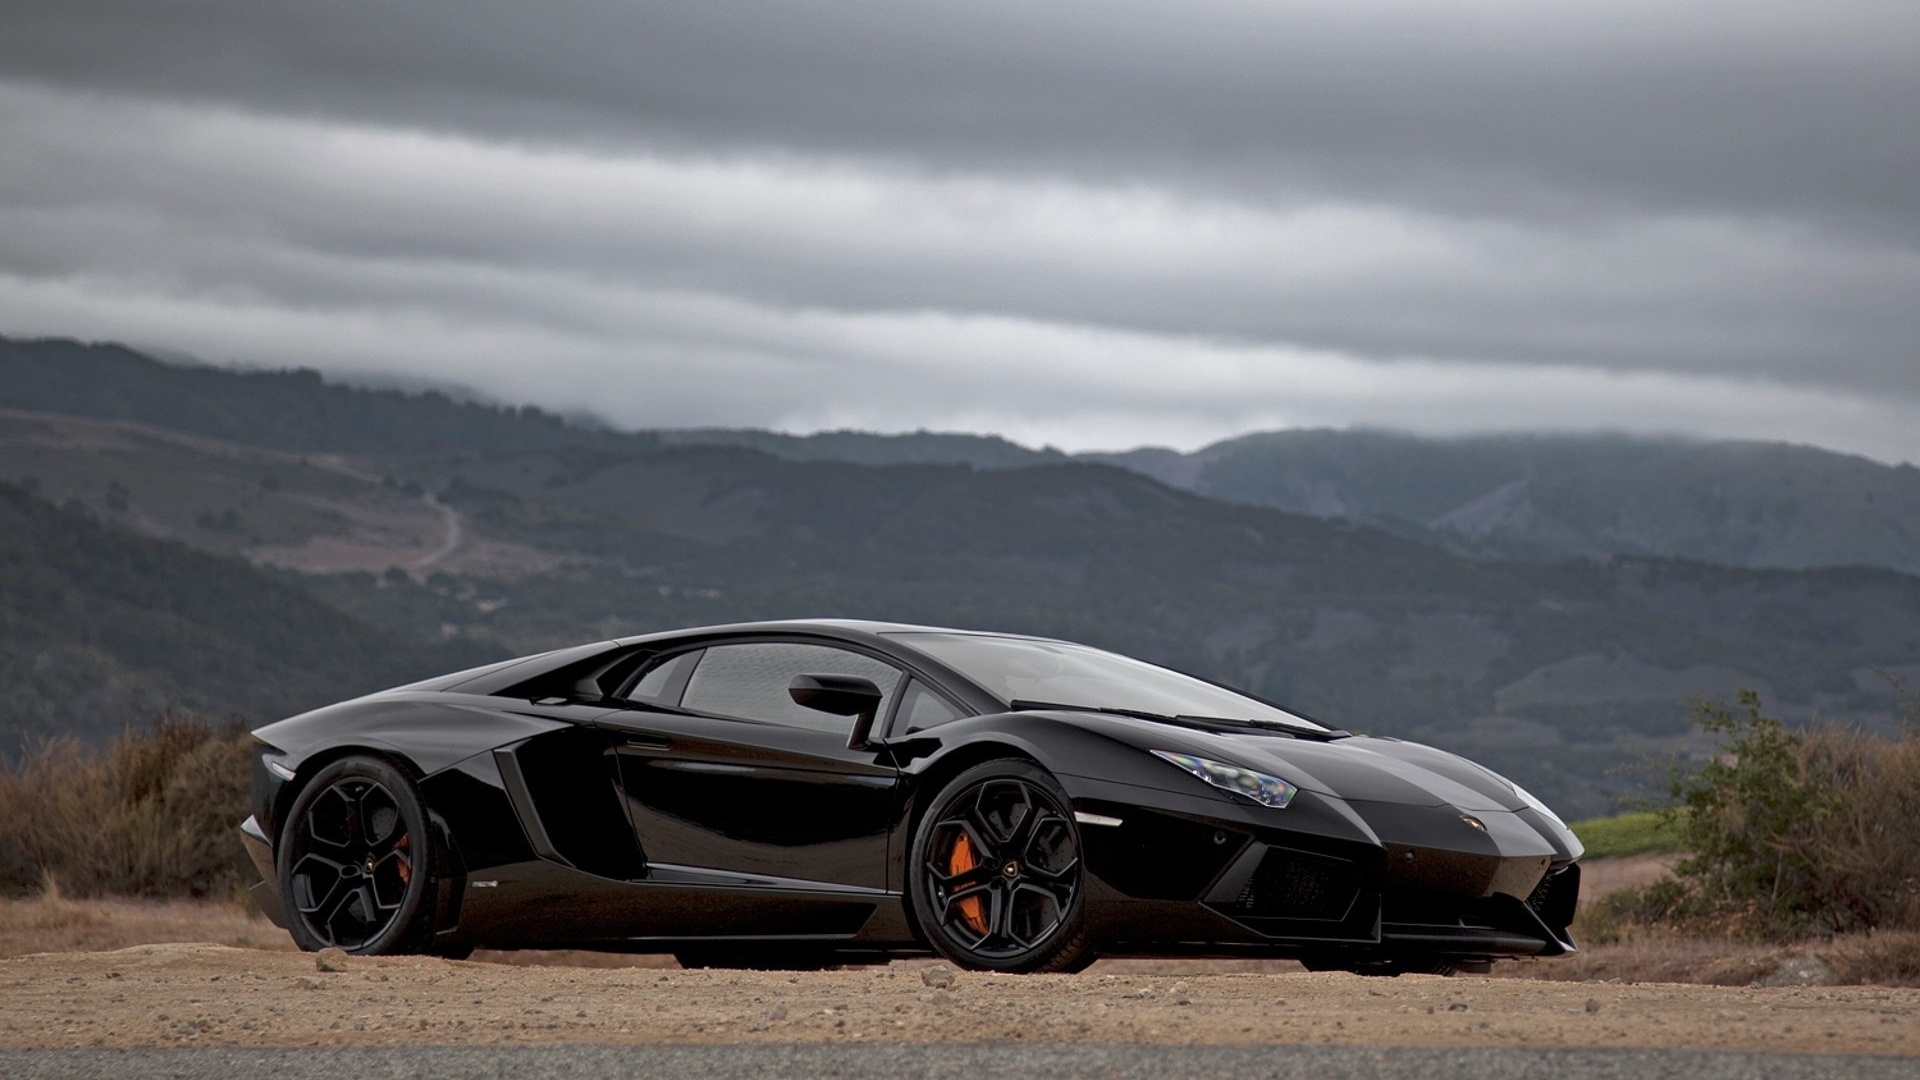 Lamborghini Aventador Black 1080p HD Wallpaper 326 Car   bwalles 1920x1080